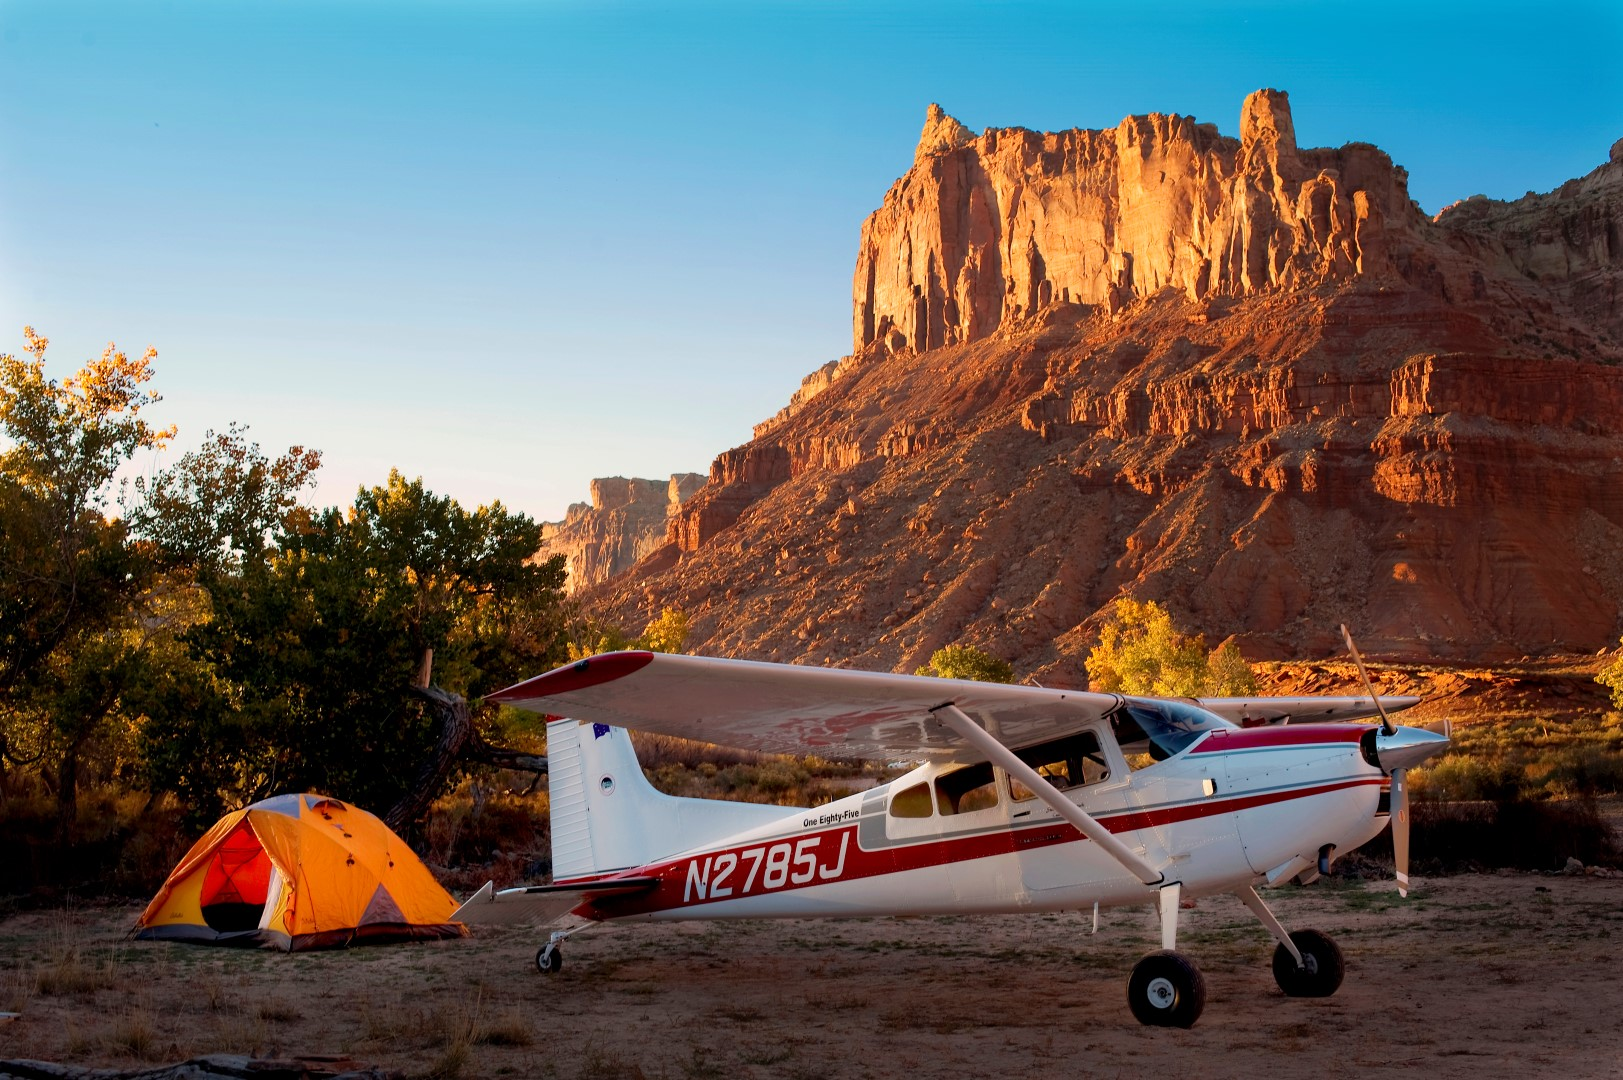 Mexican Mountain. The end of a perfect day in Utah's canyon country. Photo by Steve Durtschi, president of the Utah Back Country Pilots Association.